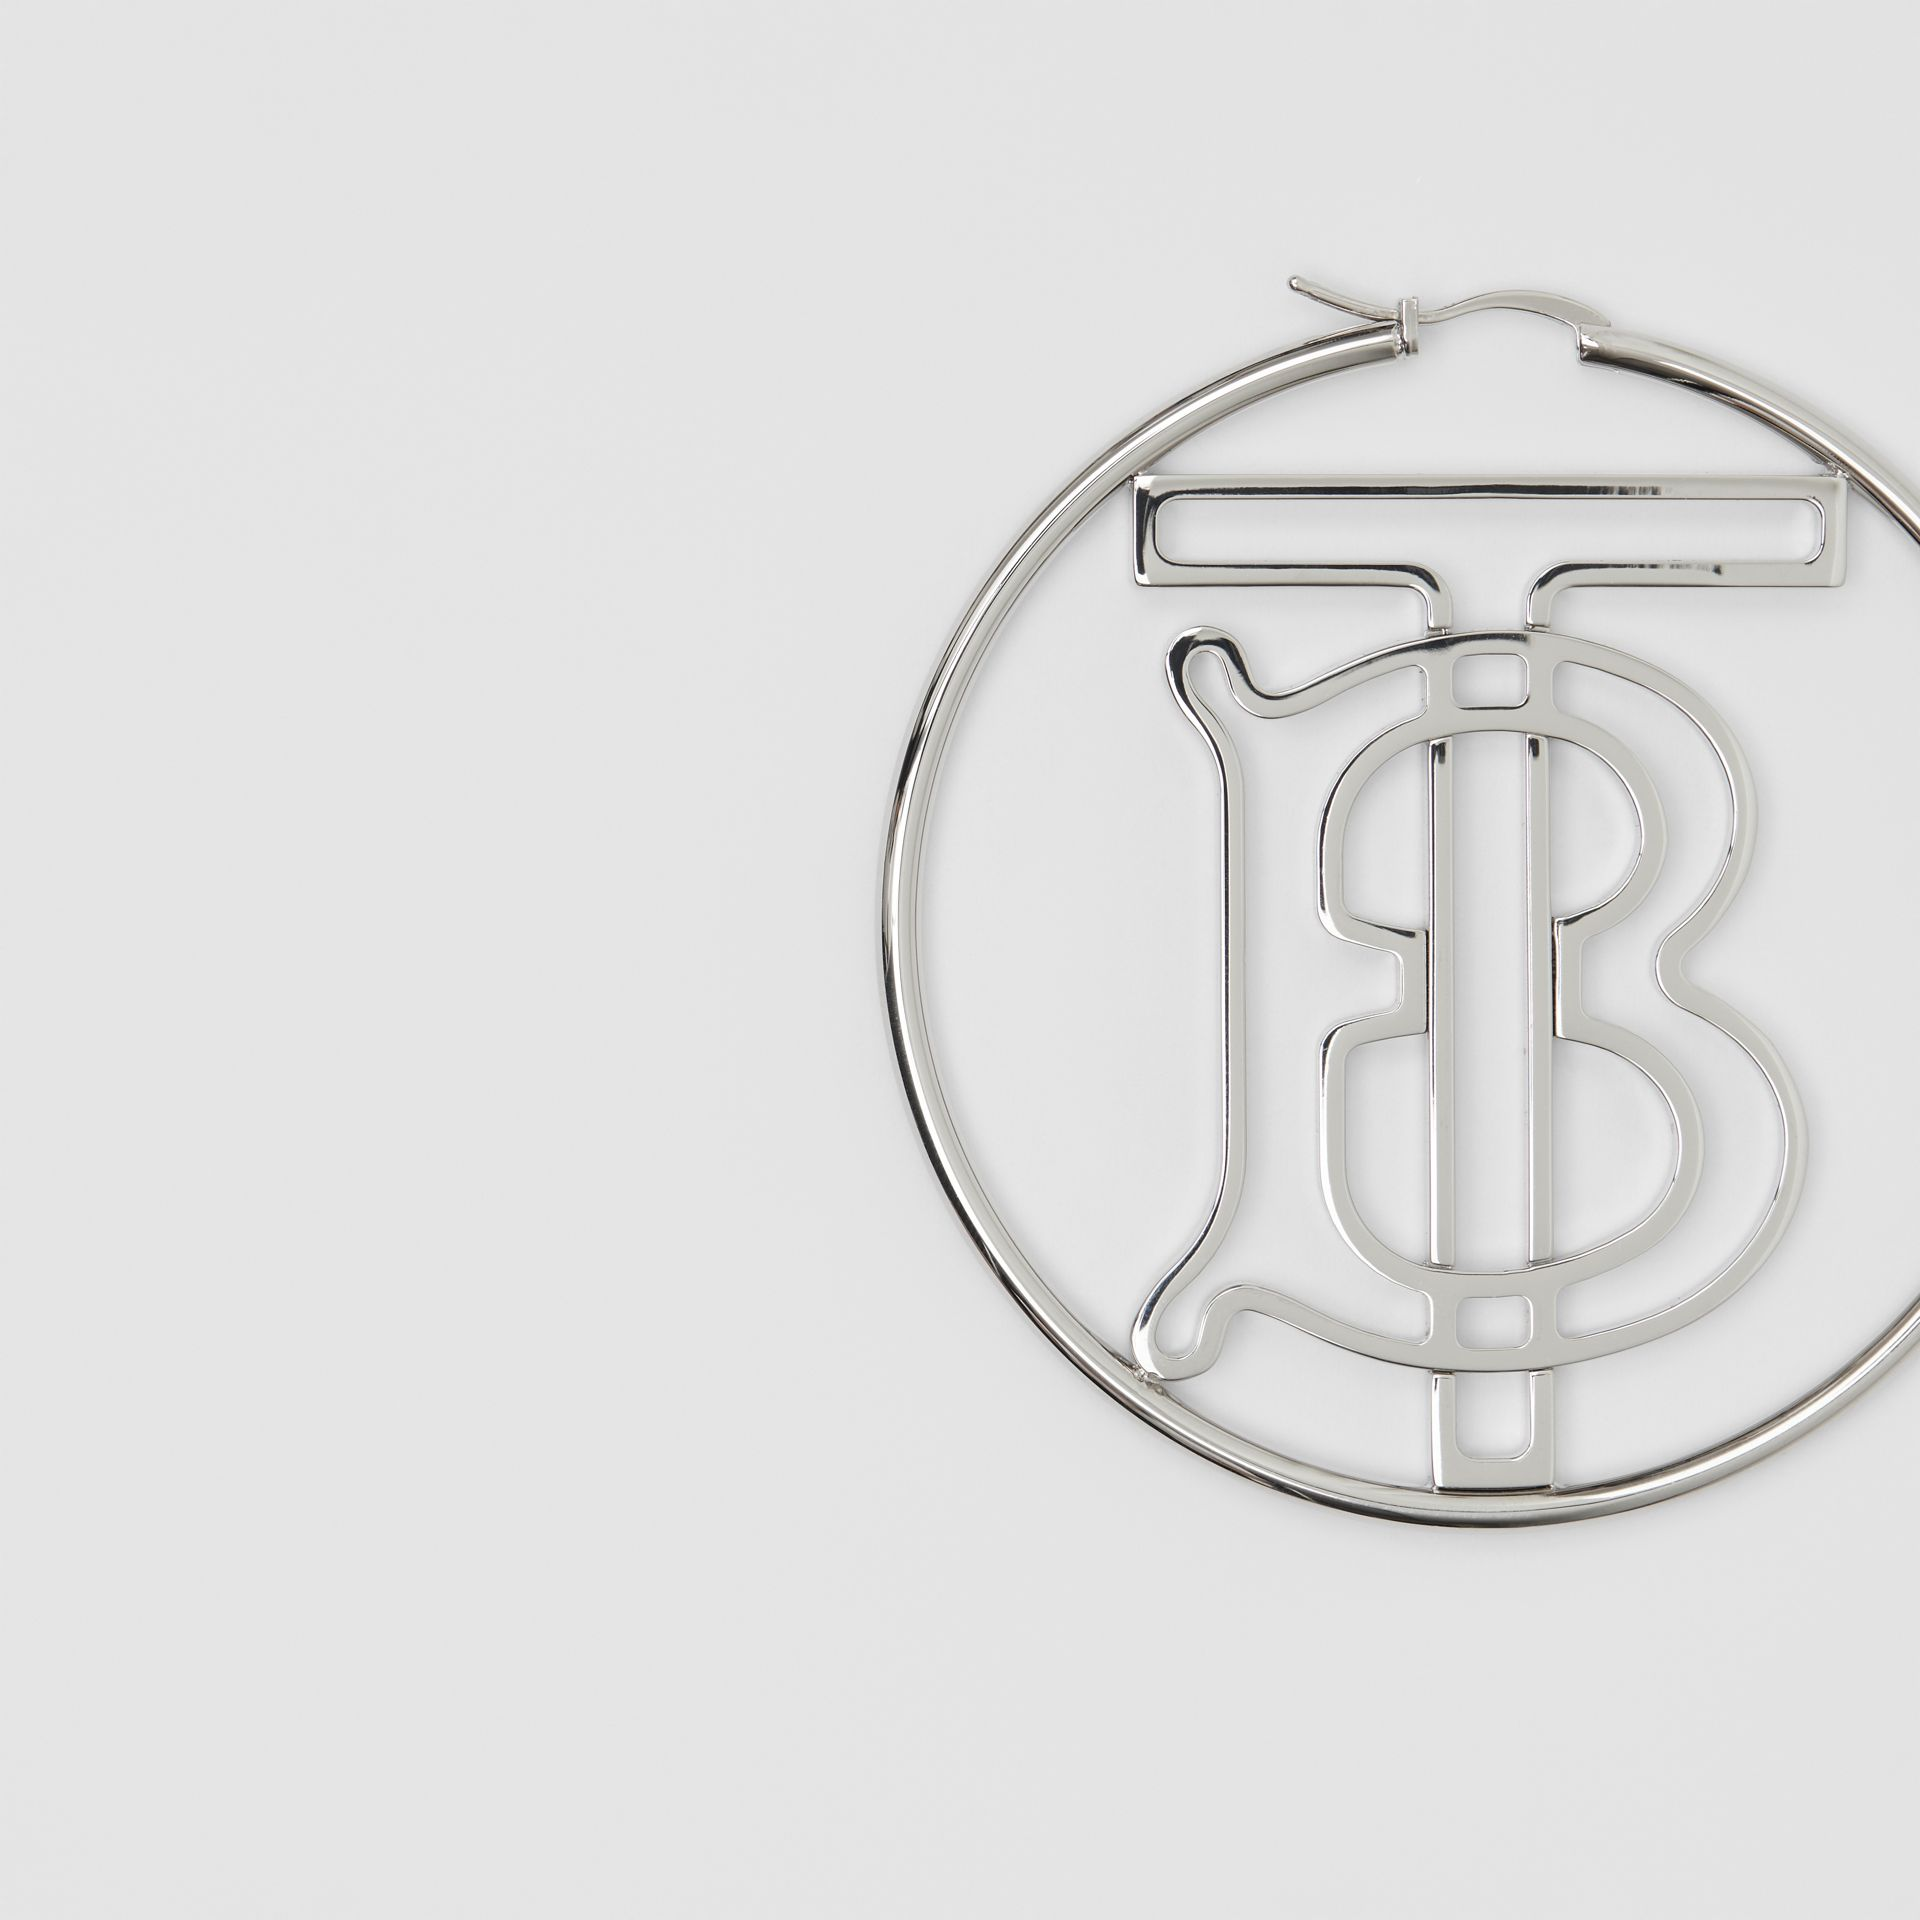 Palladium-plated Monogram Motif Hoop Earrings in Palladio - Women | Burberry Singapore - gallery image 1